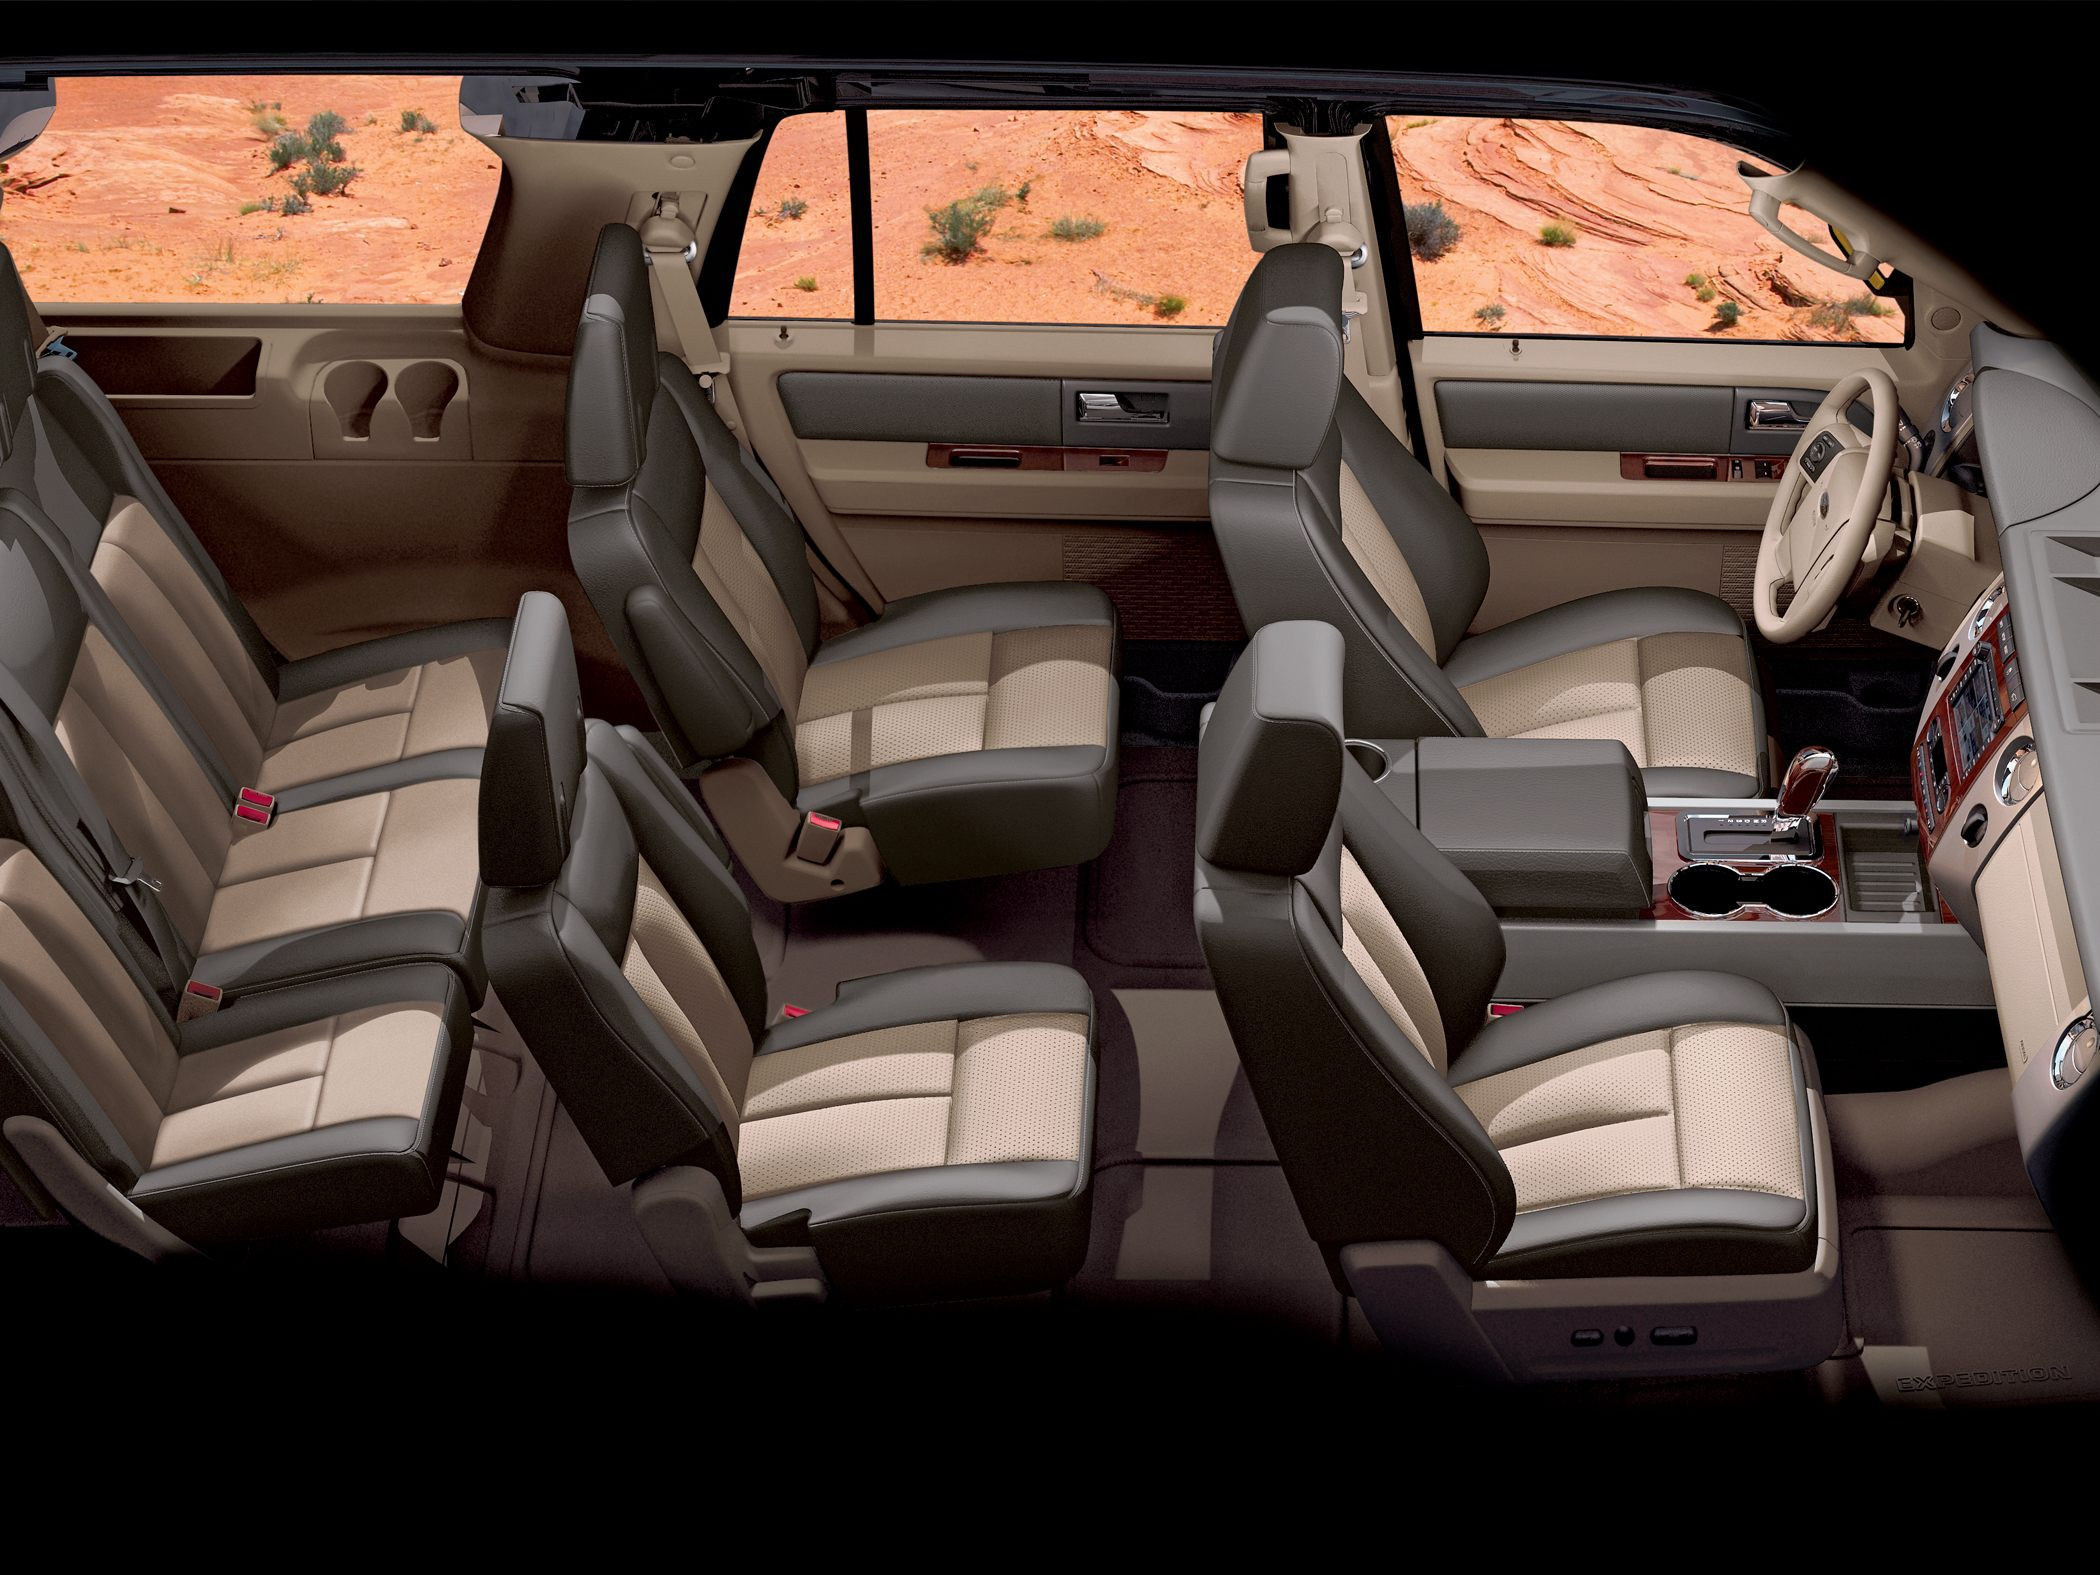 Ford Expedition interior #4